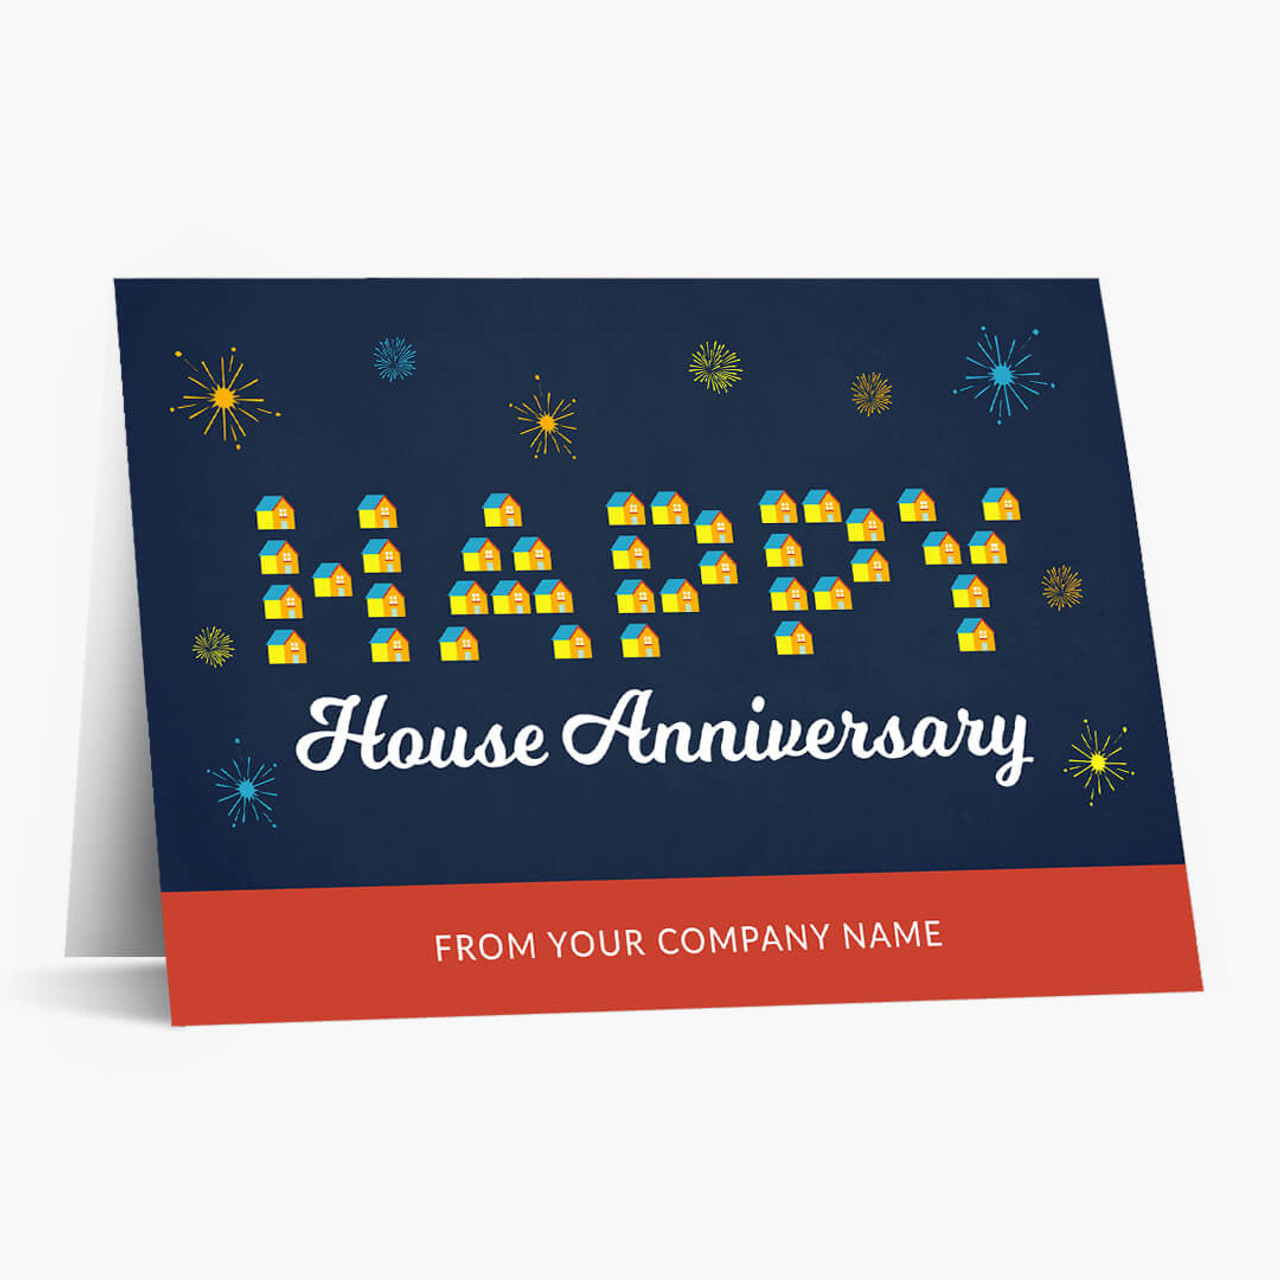 Happy House Anniversary